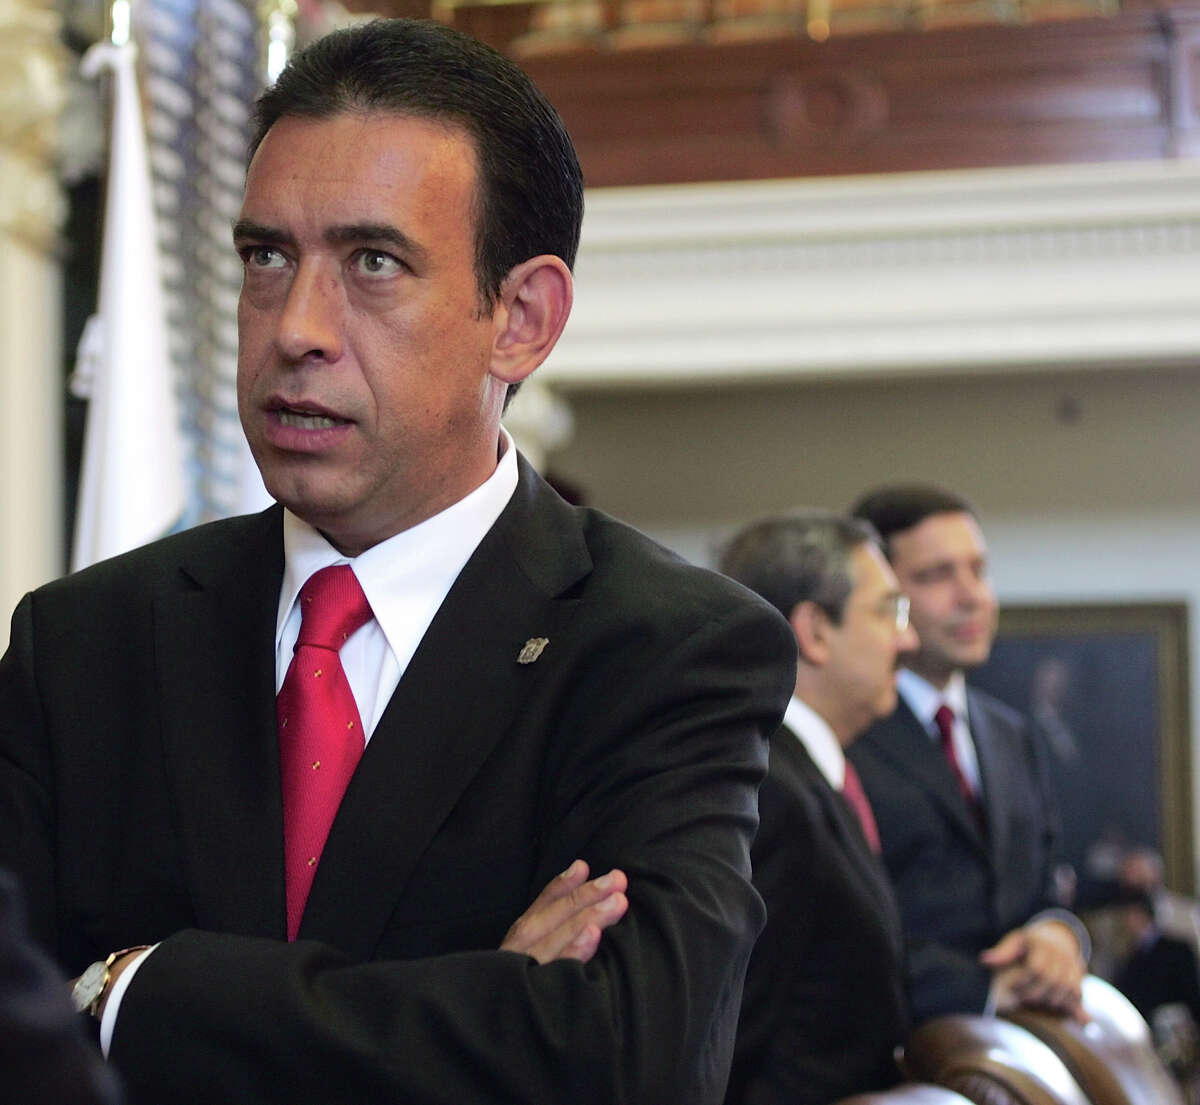 In this Aug. 24, 2006 file photo, Coahuila, Mexico, Gov. Humberto Moreira Valdes talks with another governor before the opening ceremony of the border governors conference in the Texas Capitol in Austin, Texas. Moreira, head of Mexico's Institutional Revolutionary Party, PRI, resigned Friday, Dec. 2, 2011 over a financial scandal that threatened the party's efforts to rebrand itself as corruption-free and retake the presidency in 2012. (AP Photo/Harry Cabluck, File)